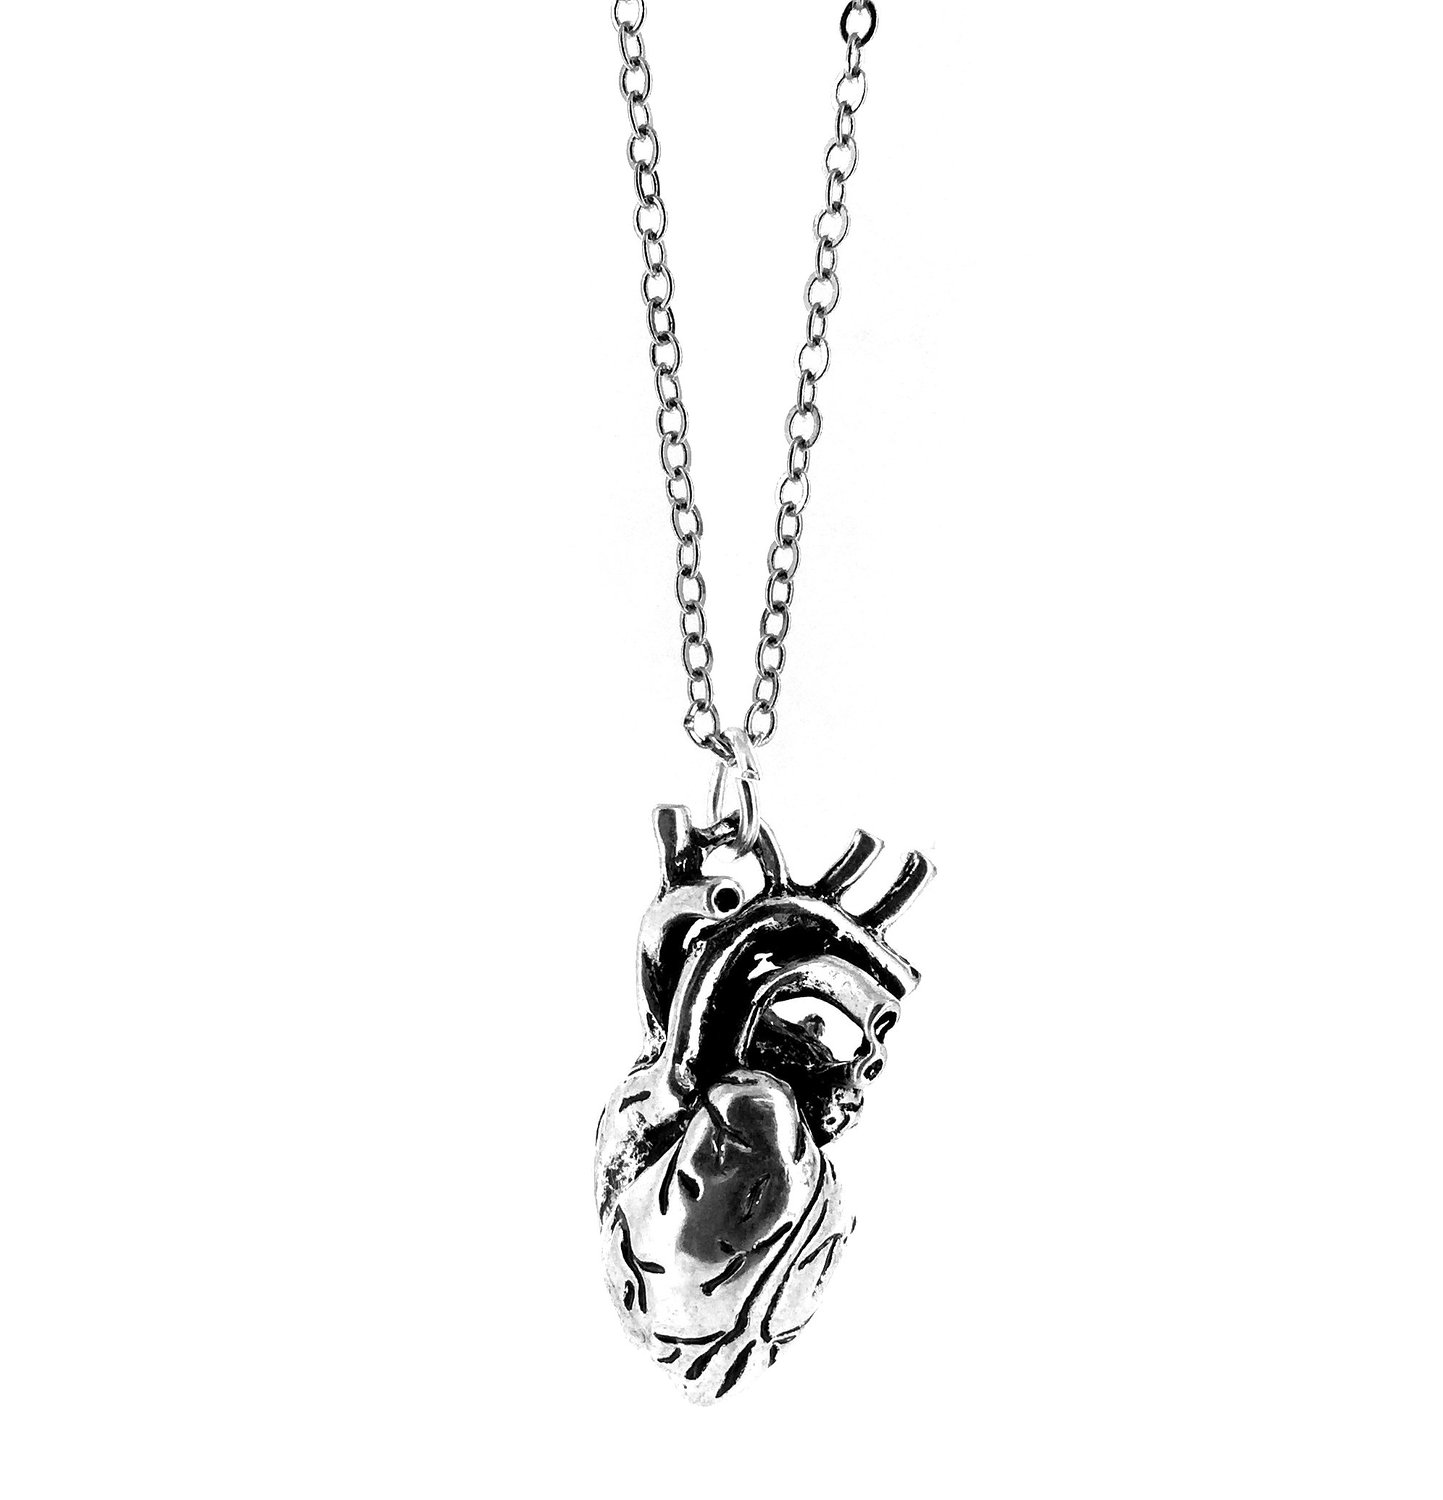 be1df40e3 Anatomically Correct Human Heart Charm Necklace - Gift Boxed: Amazon.co.uk:  Jewellery